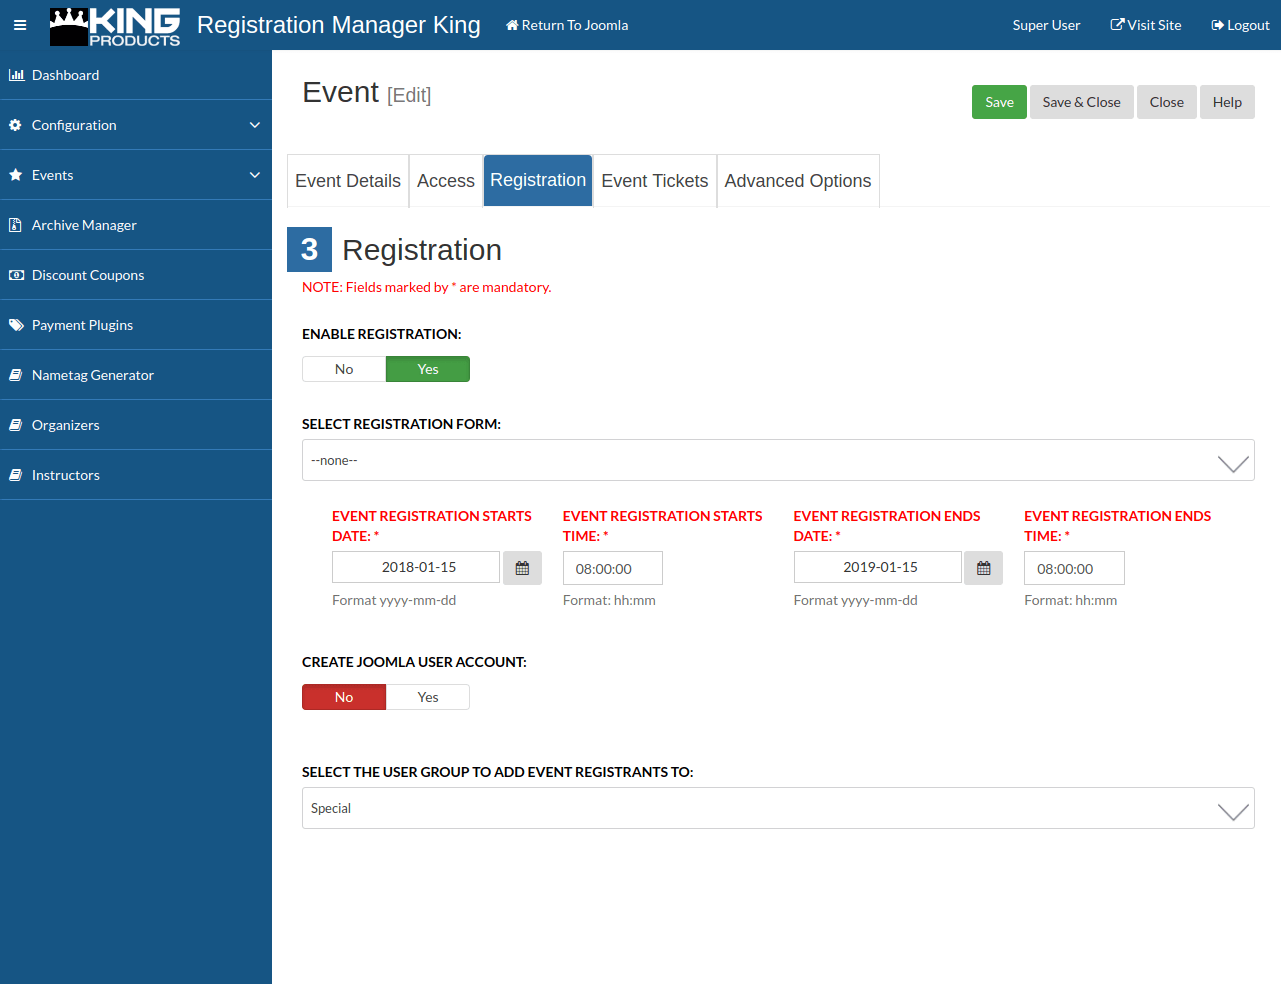 eventregistrationtab